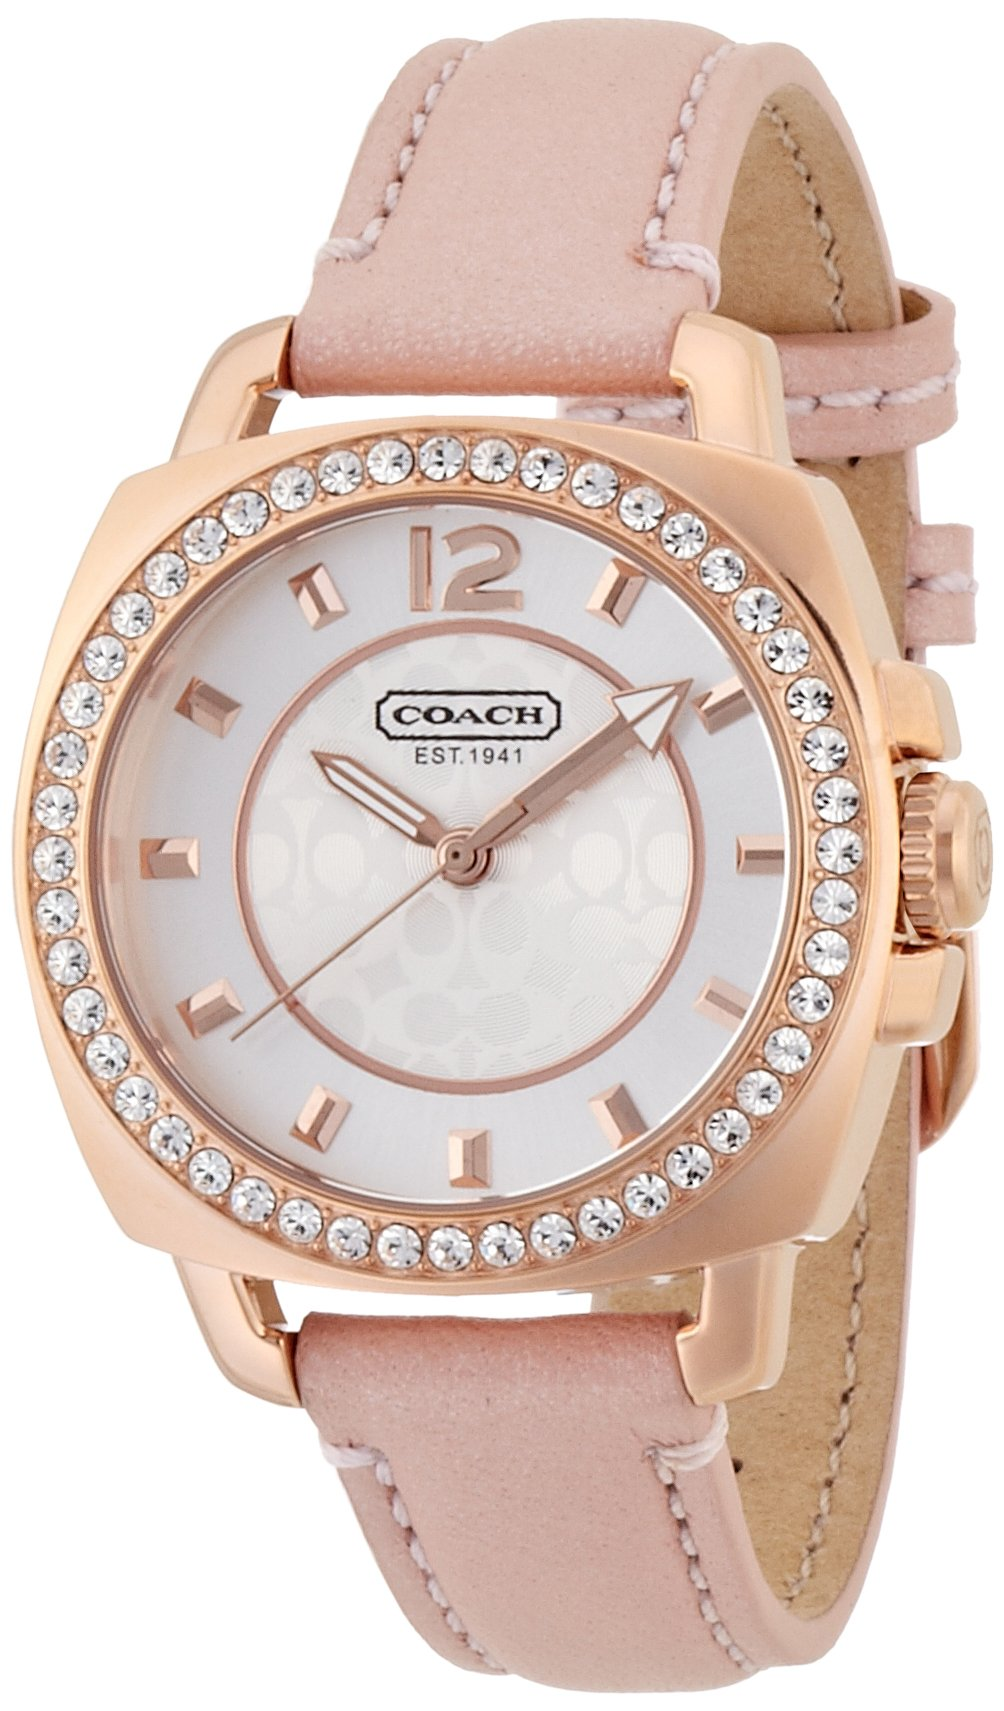 COACH 14501753 MINI BOYFRIEND PINK LEATHER ROSE GOLD CASE WOMEN'S WATCH